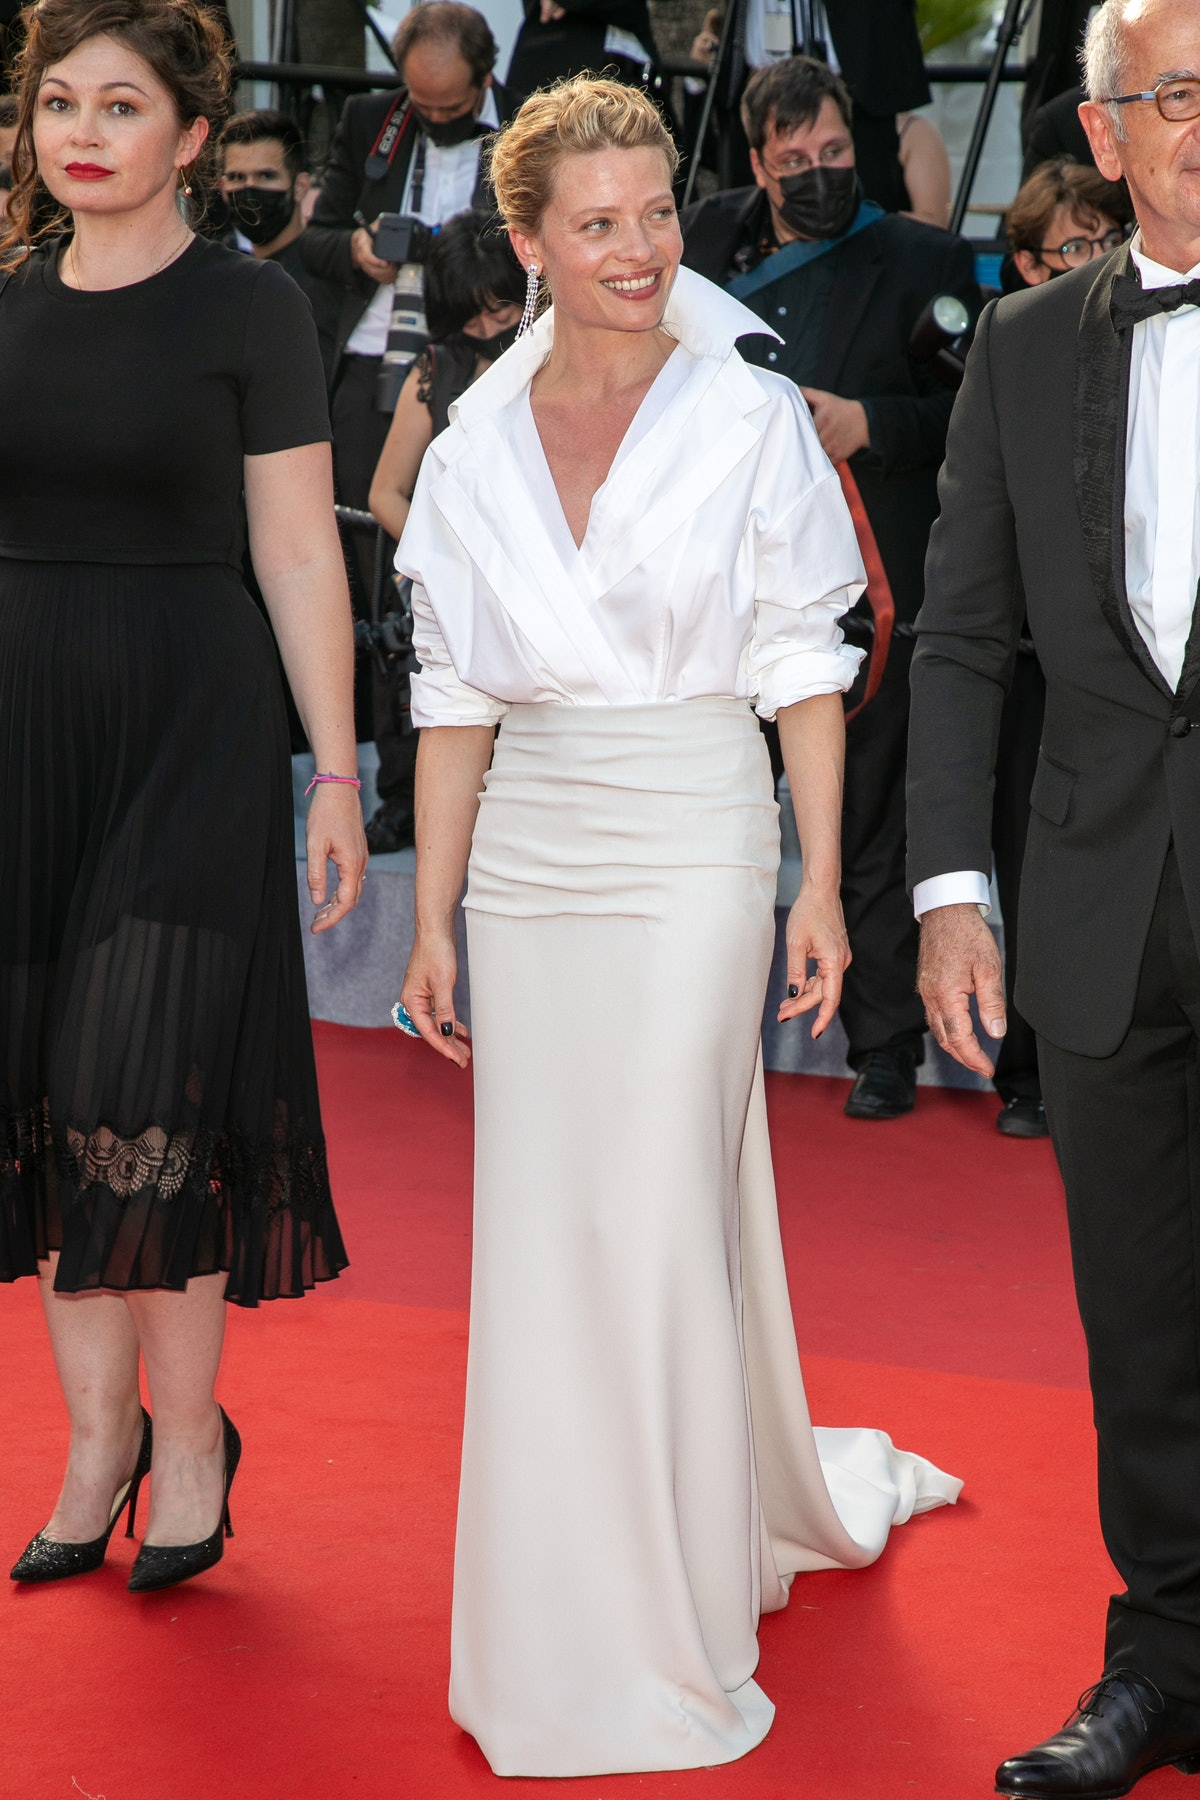 """CANNES, FRANCE - JULY 17: Actress Melanie Thierry attends the final screening of """"OSS 117: From Africa With Love"""" and closing ceremony during the 74th annual Cannes Film Festival on July 17, 2021 in Cannes, France. (Photo by Marc Piasecki/FilmMagic)"""